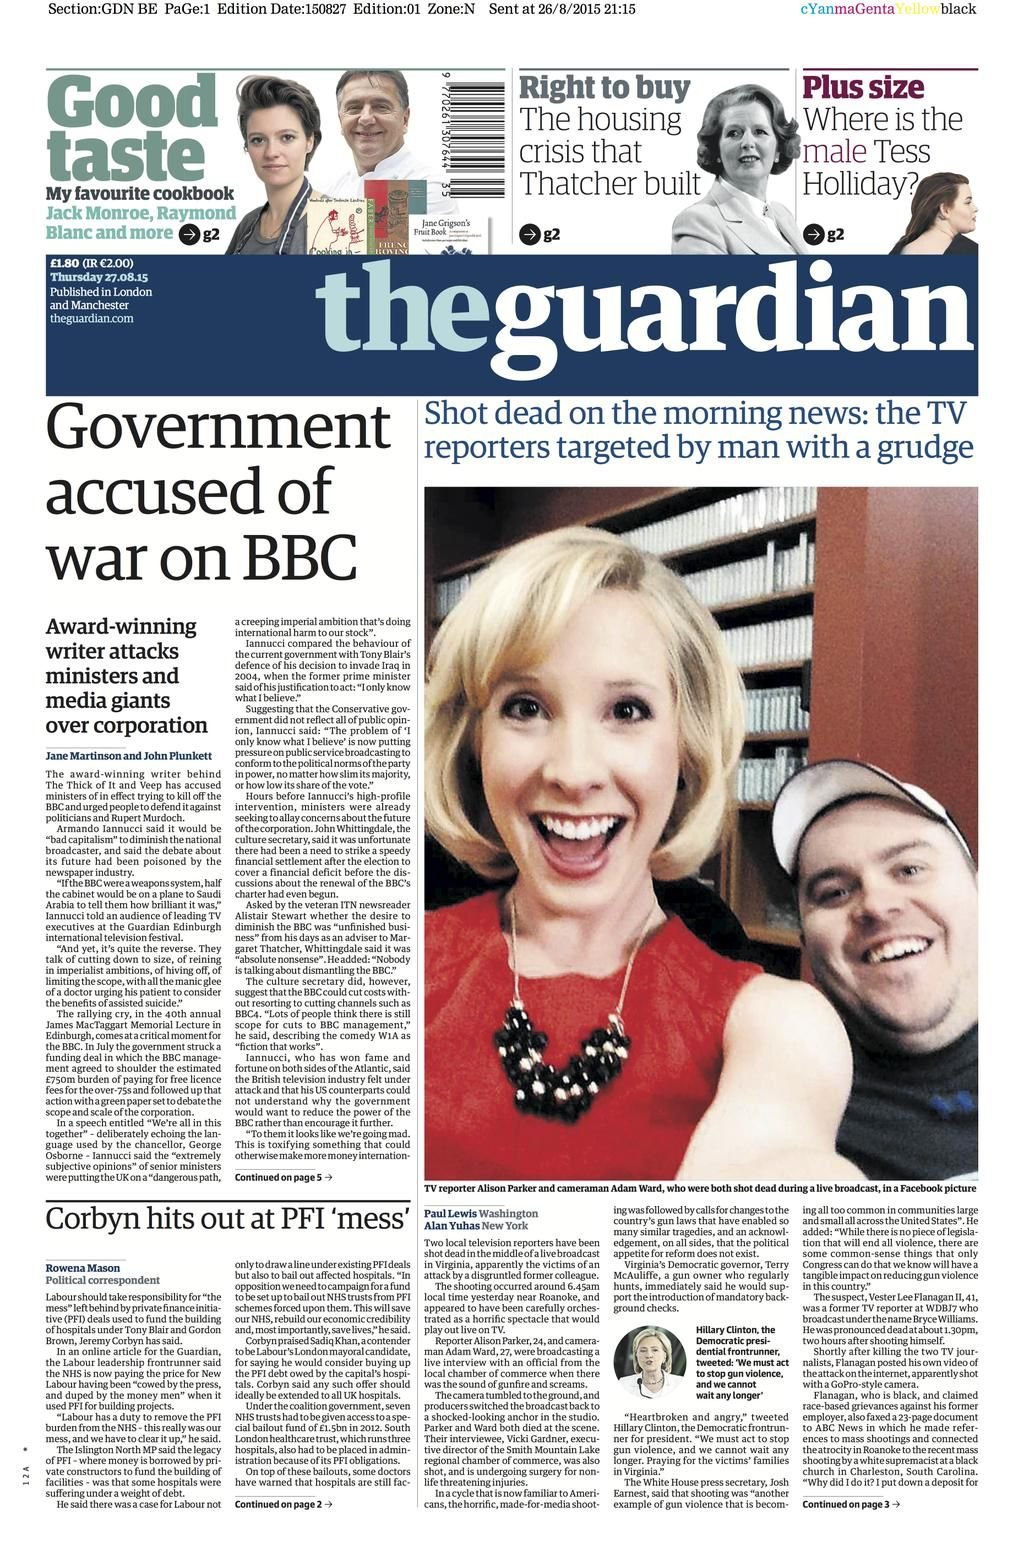 """Guardian news on Twitter: """"Guardian front page, Thursday 27 August 2015: Government accused of war on BBC http://t.co/Y8zdq9wF1Z"""" Journalist and camera shot dead"""